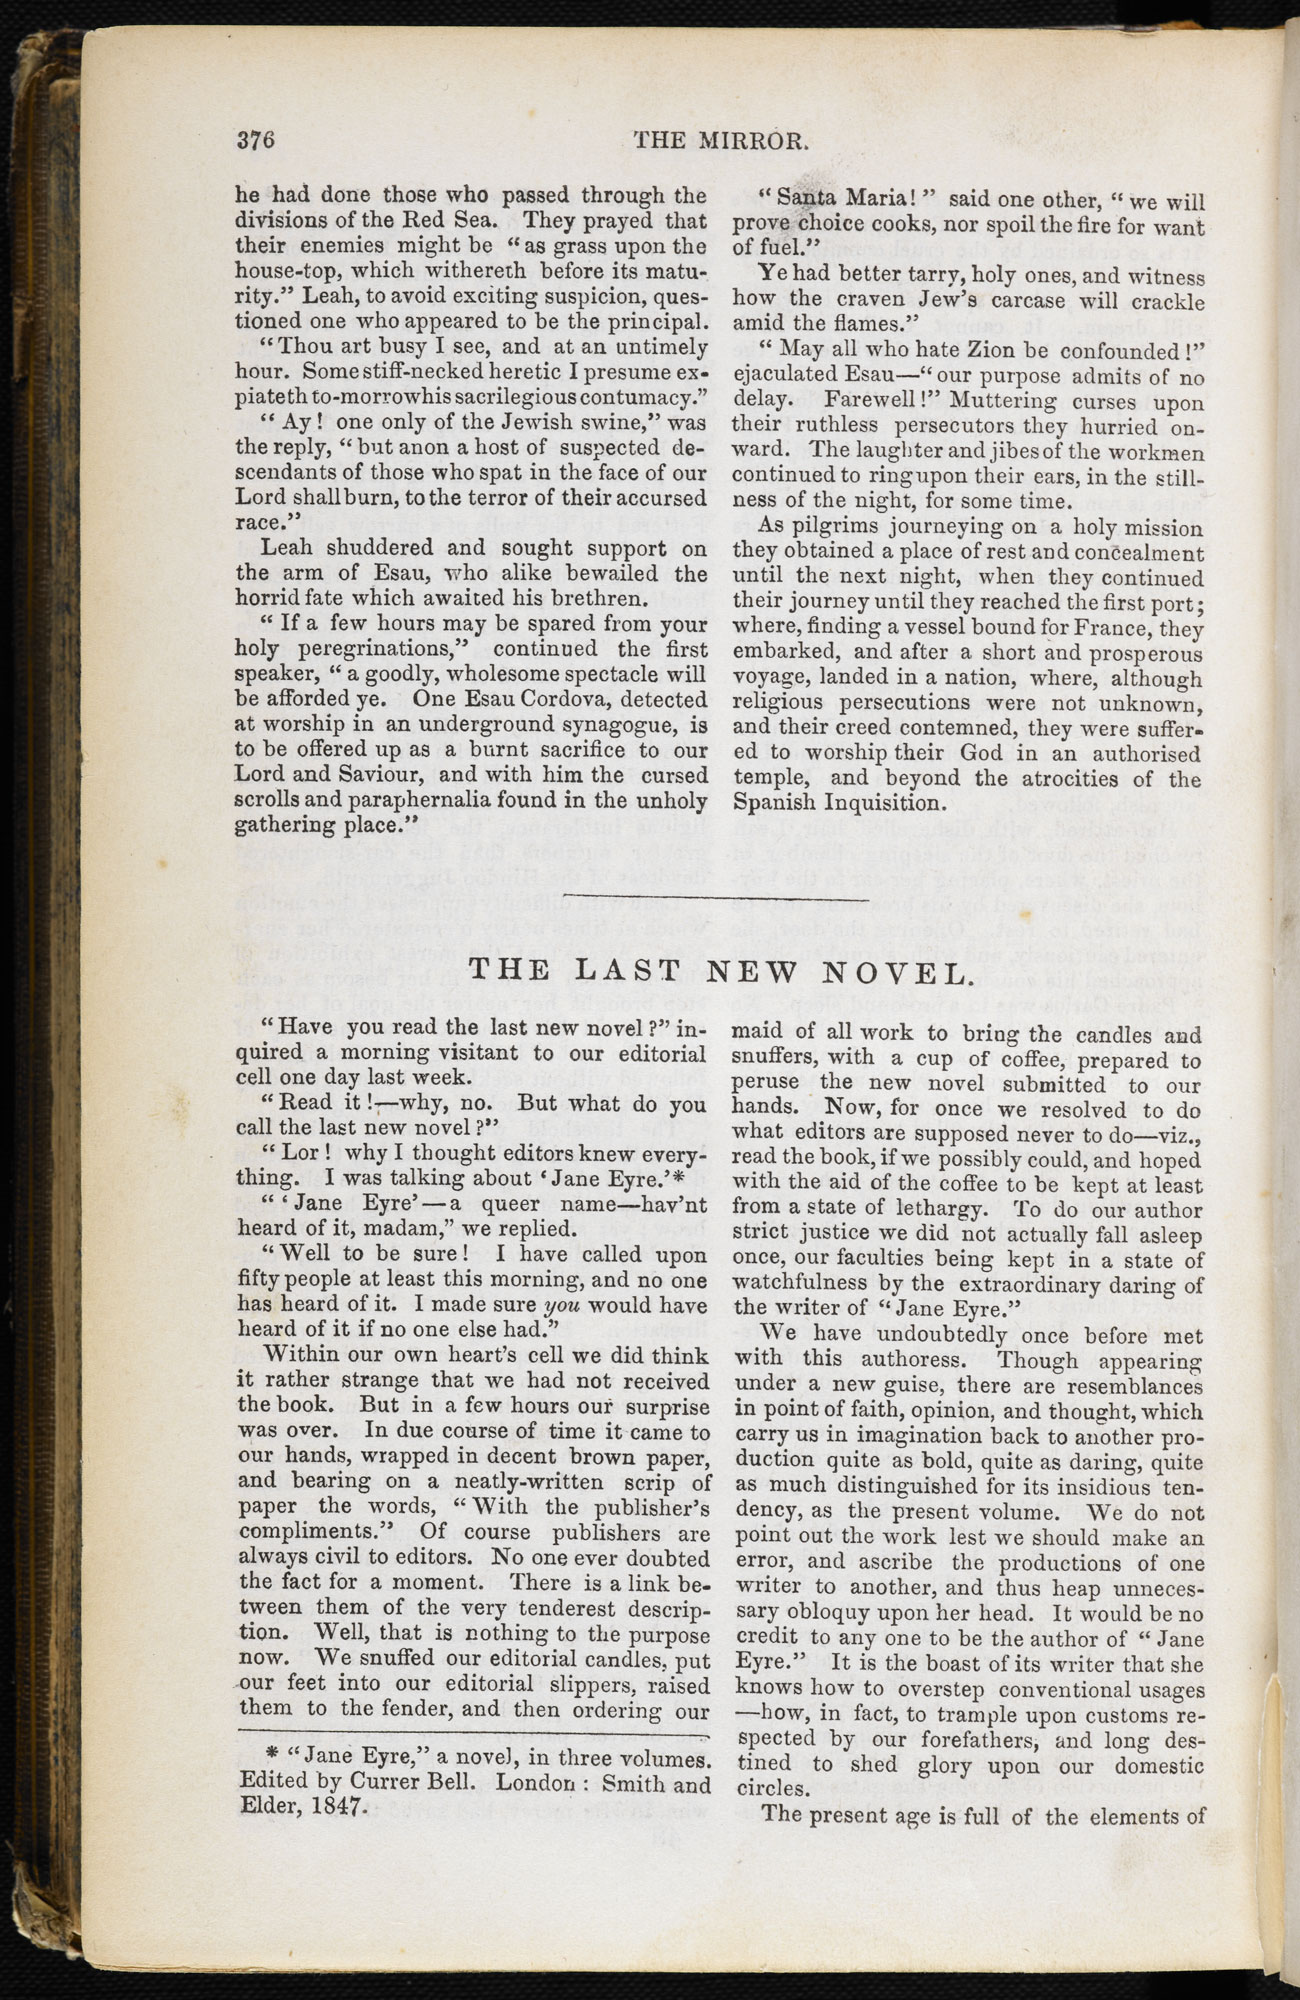 Anonymous review of Jane Eyre [page: 376]